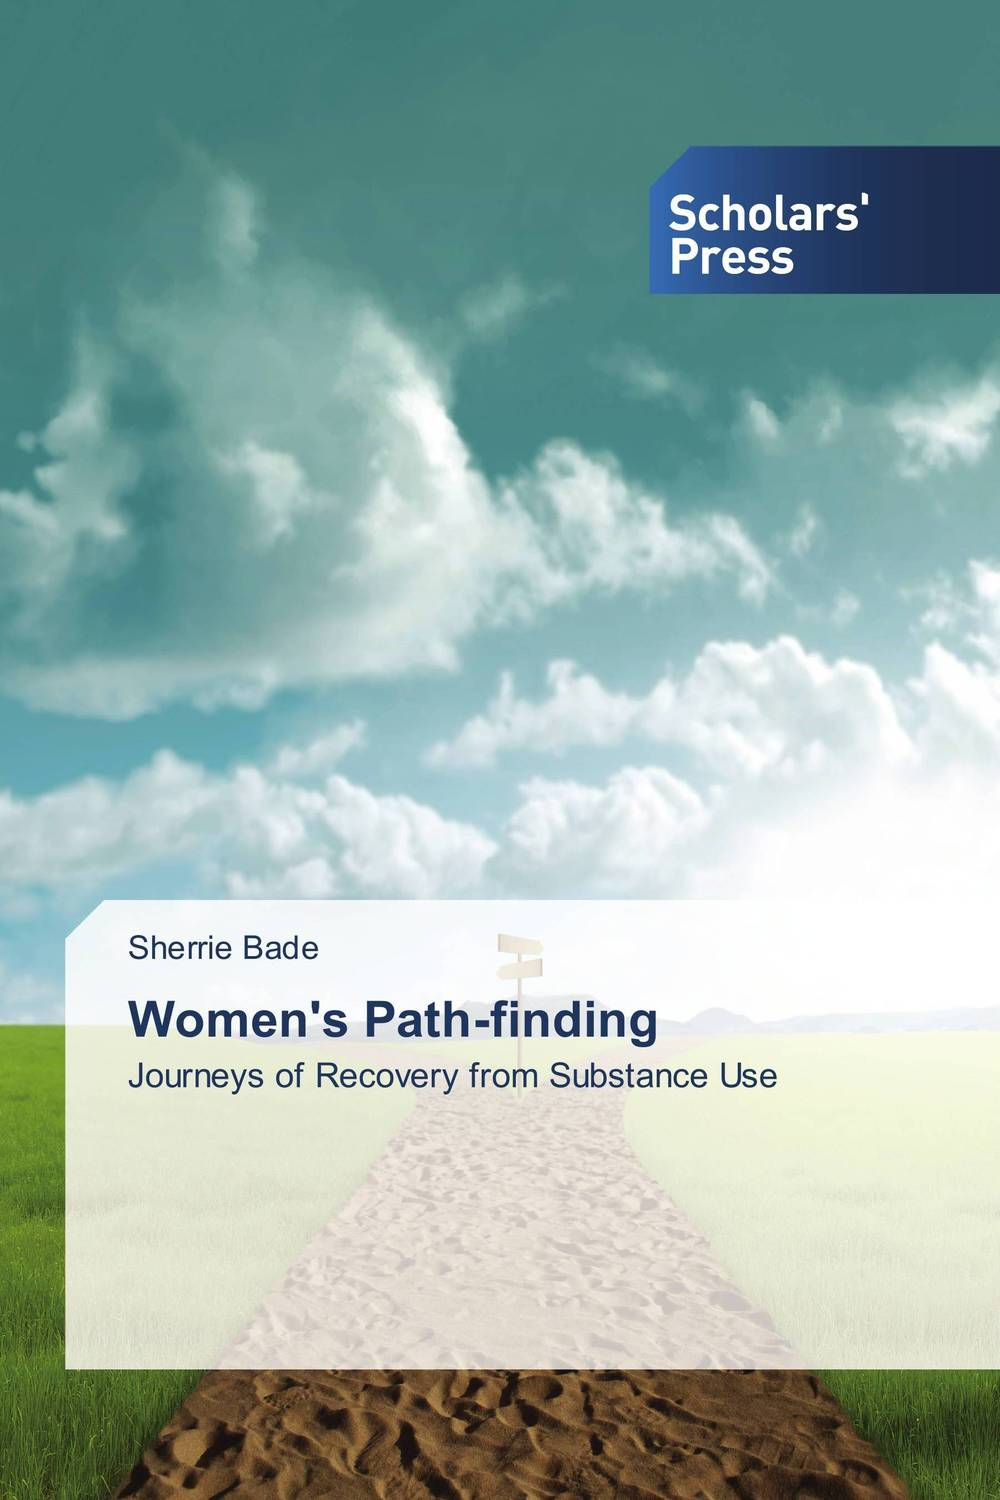 Women's Path-finding